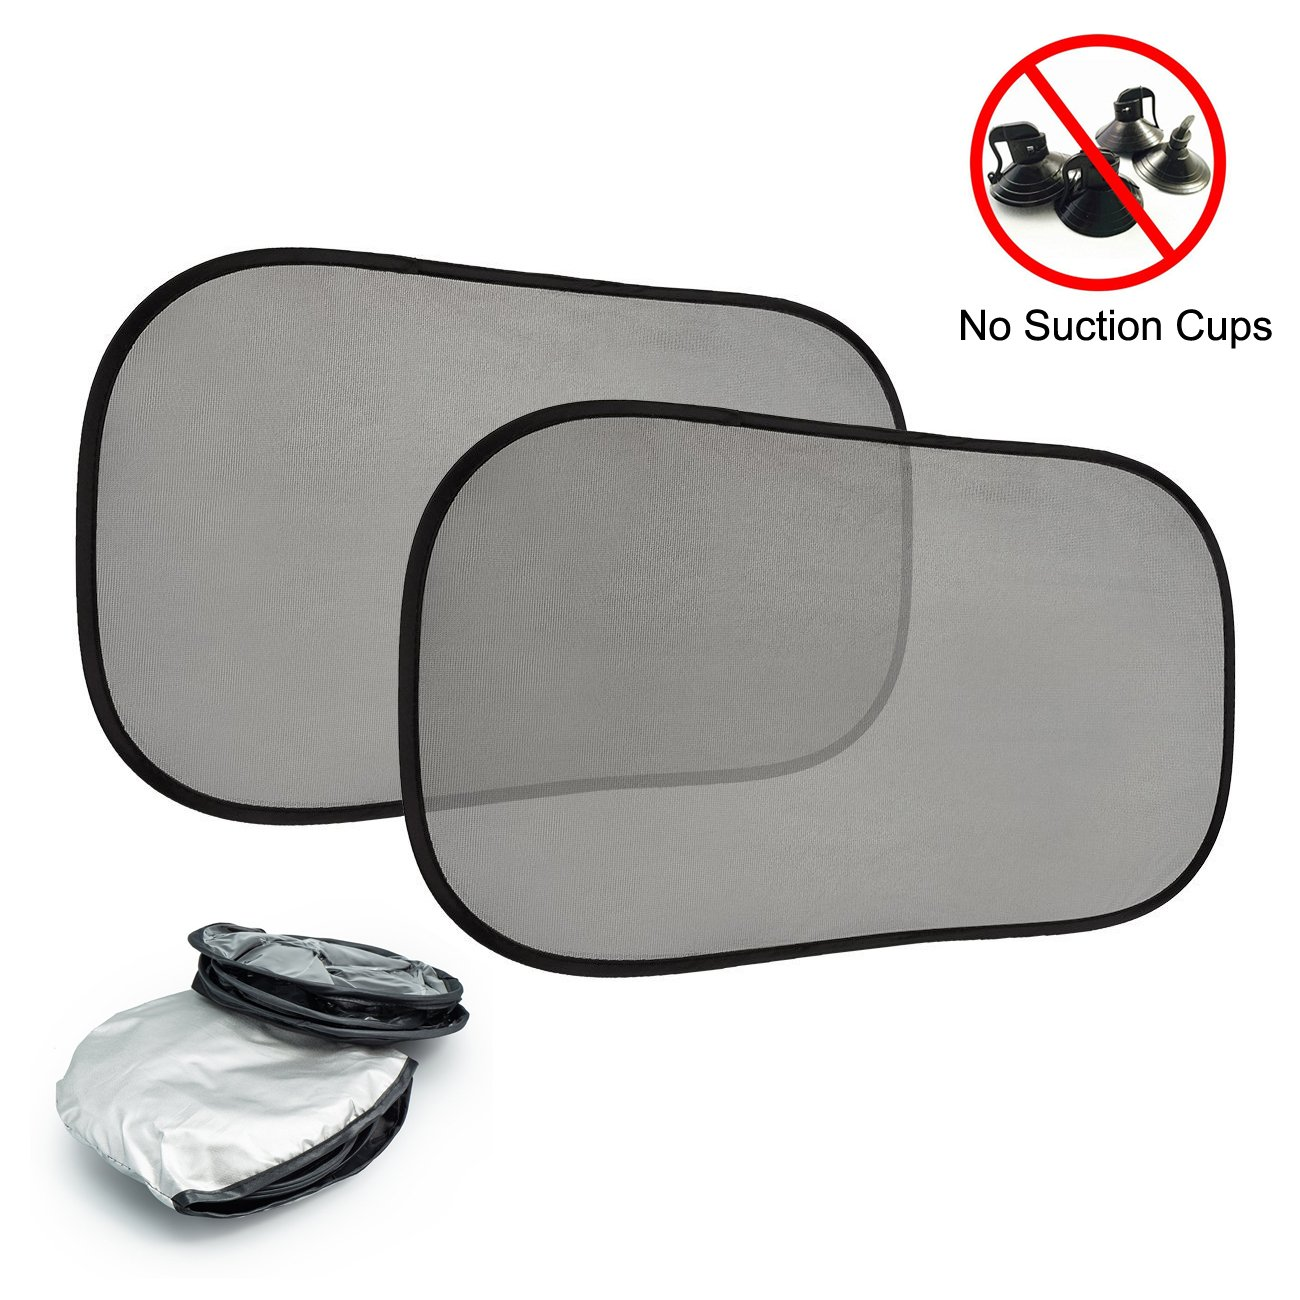 Car Sun shade for Side and Rear Window(2 Pack) – Auto Sunshades 20''X12''- No Suction Cups, Easy to Install, Protection Your Car Interior Trim and Passengers seat from sun glare and heat. Blocks over 98% of harmful UV Rays Winlights